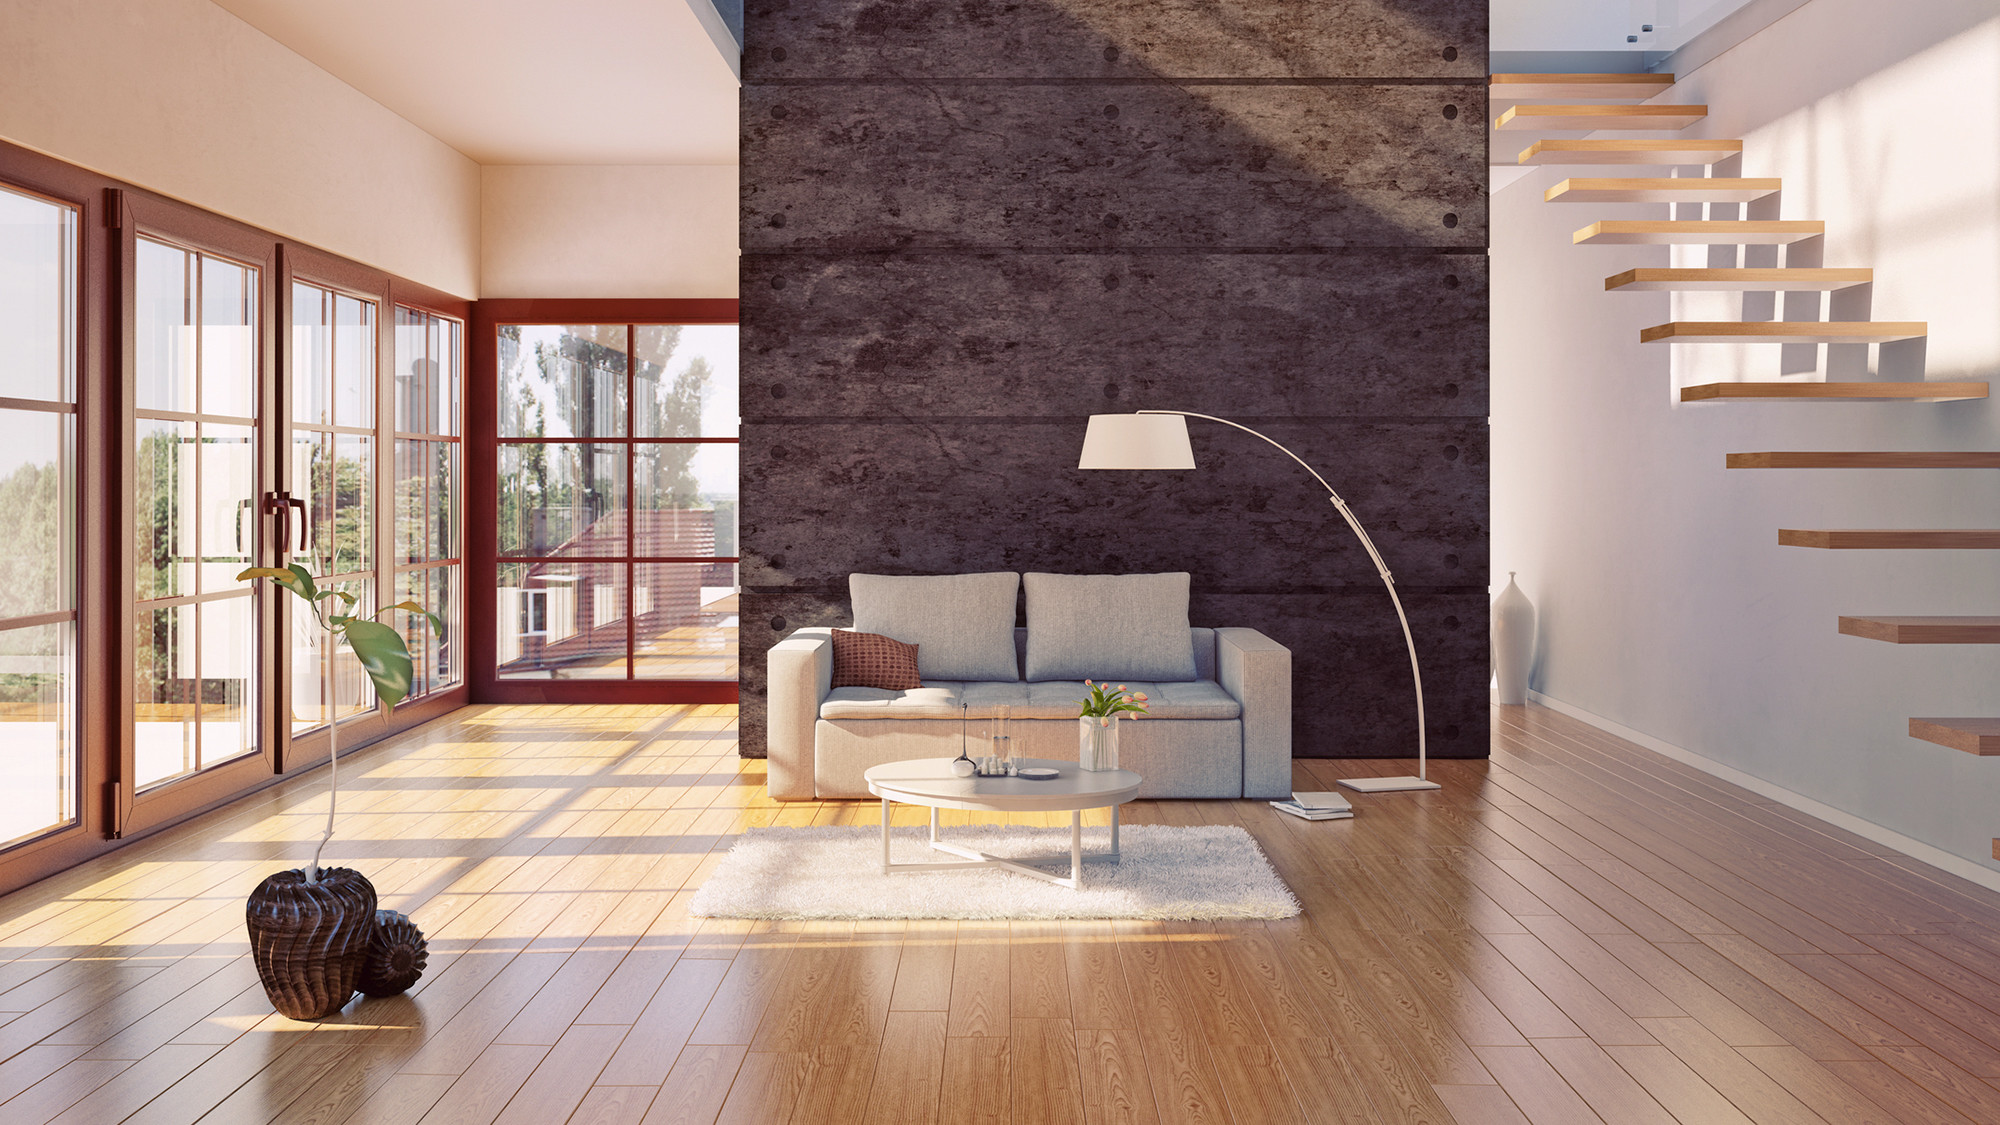 hardwood floor refinishing tacoma of do hardwood floors provide the best return on investment realtor coma with hardwood floors investment